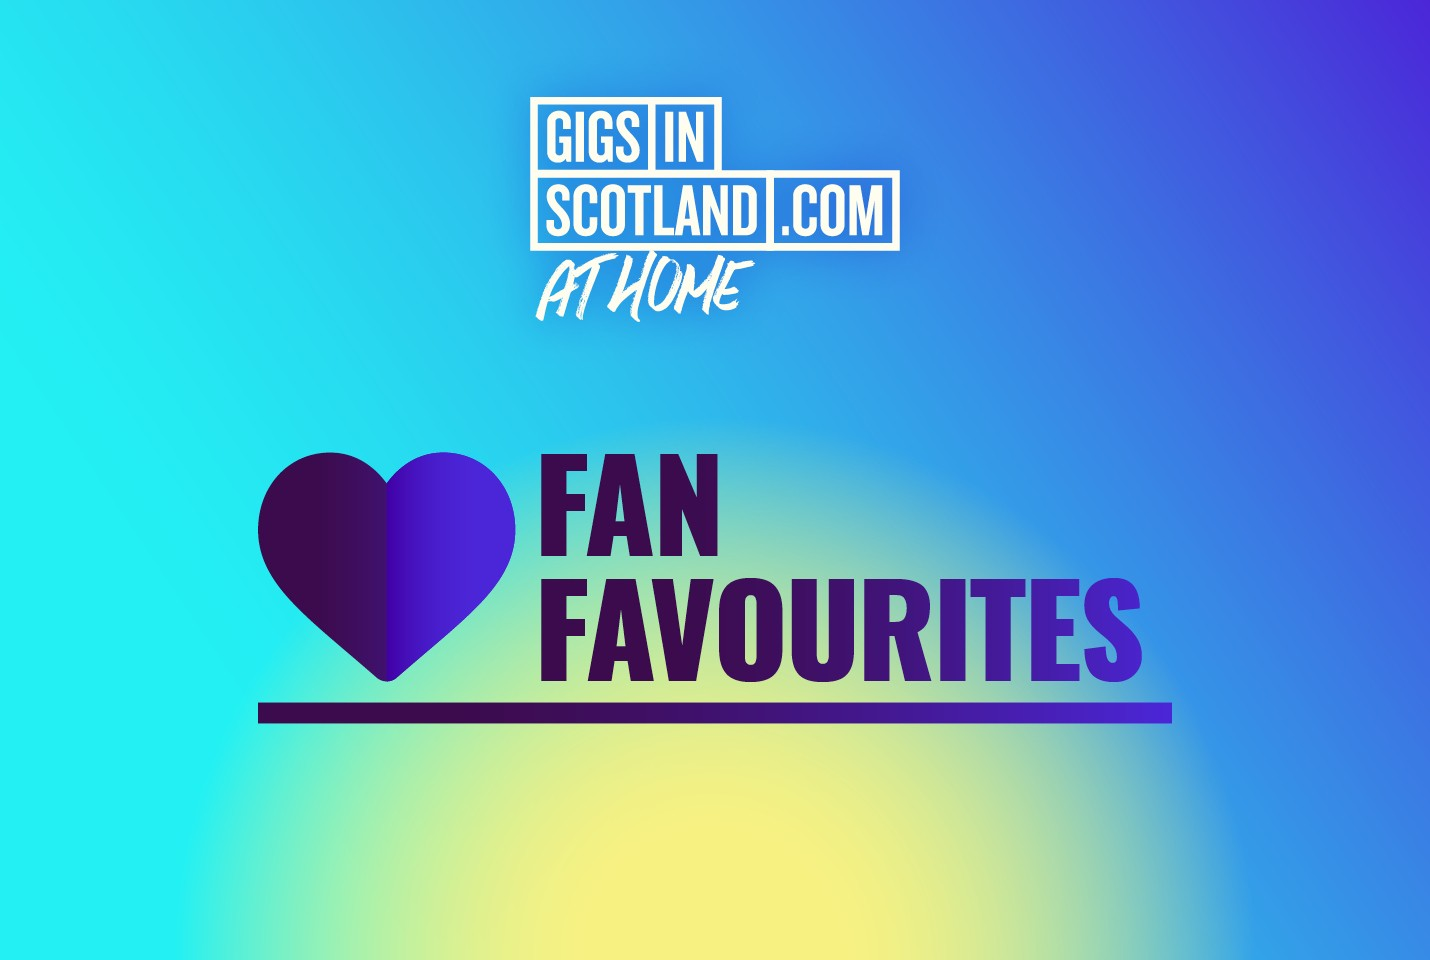 Fan Favourites - What's Your Favourite Live Album Of All Time?